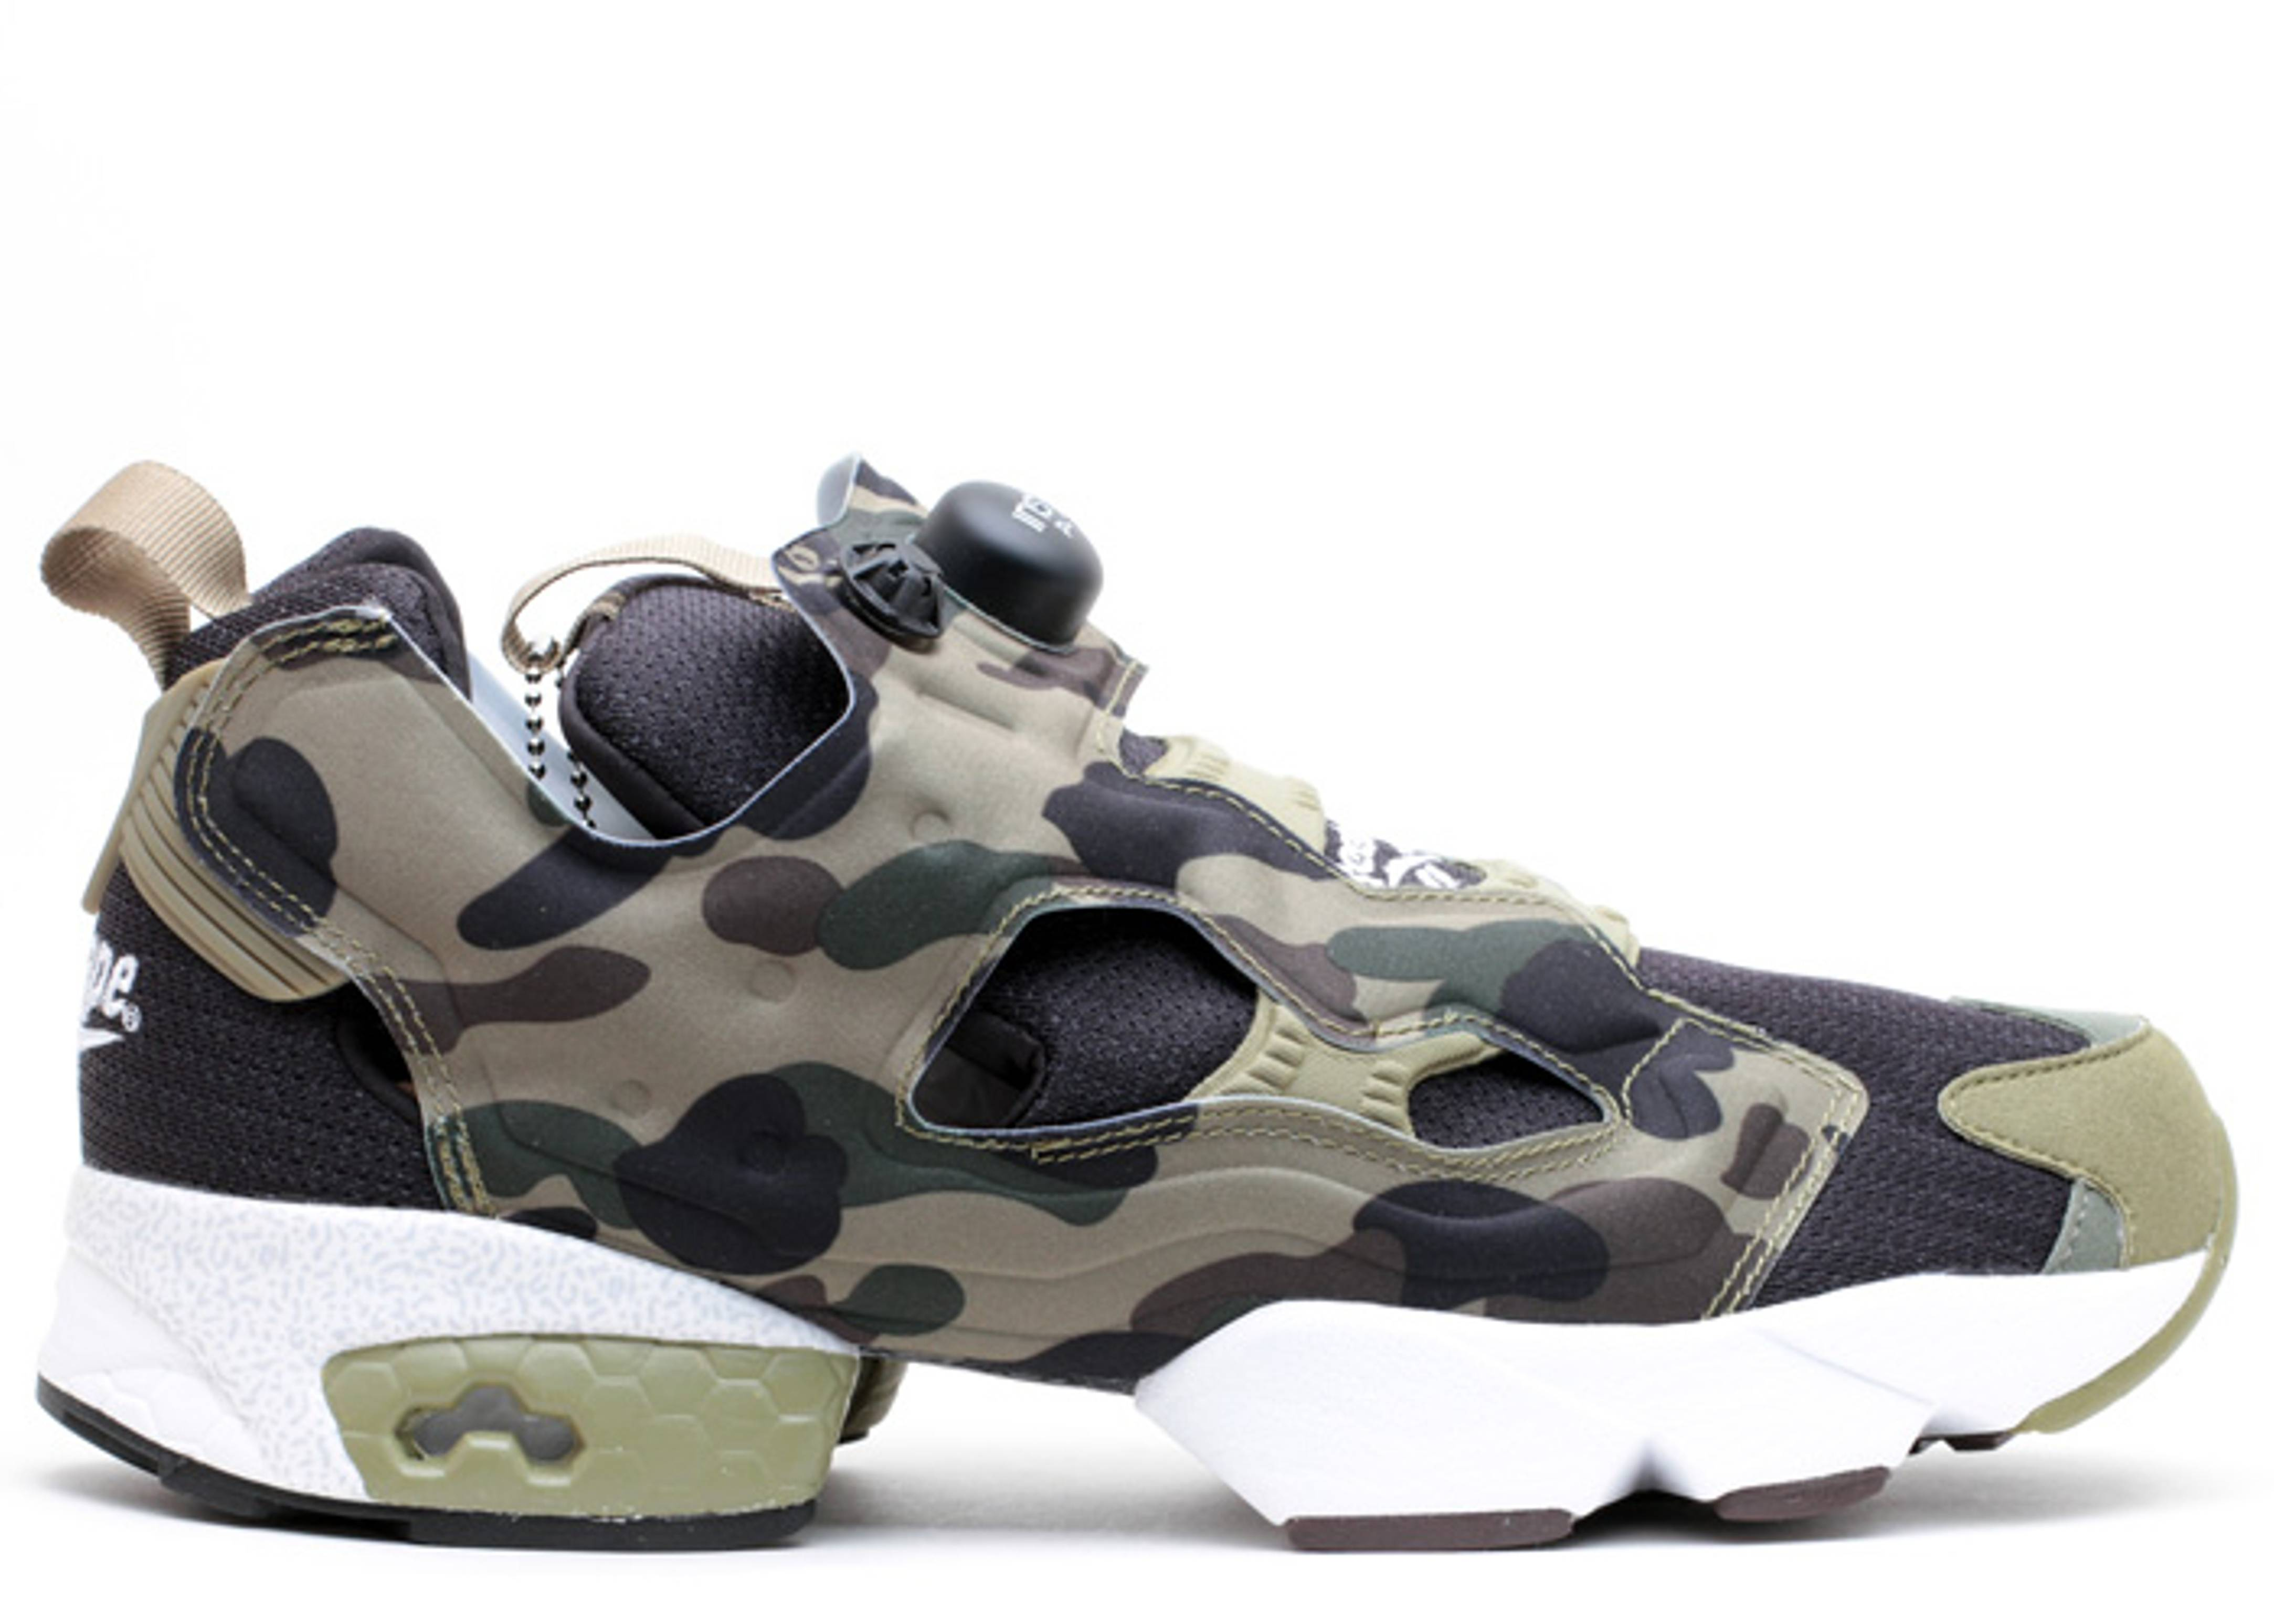 ddadb5ff Buy reebok insta pump fury x bape | Up to 64% Discounts